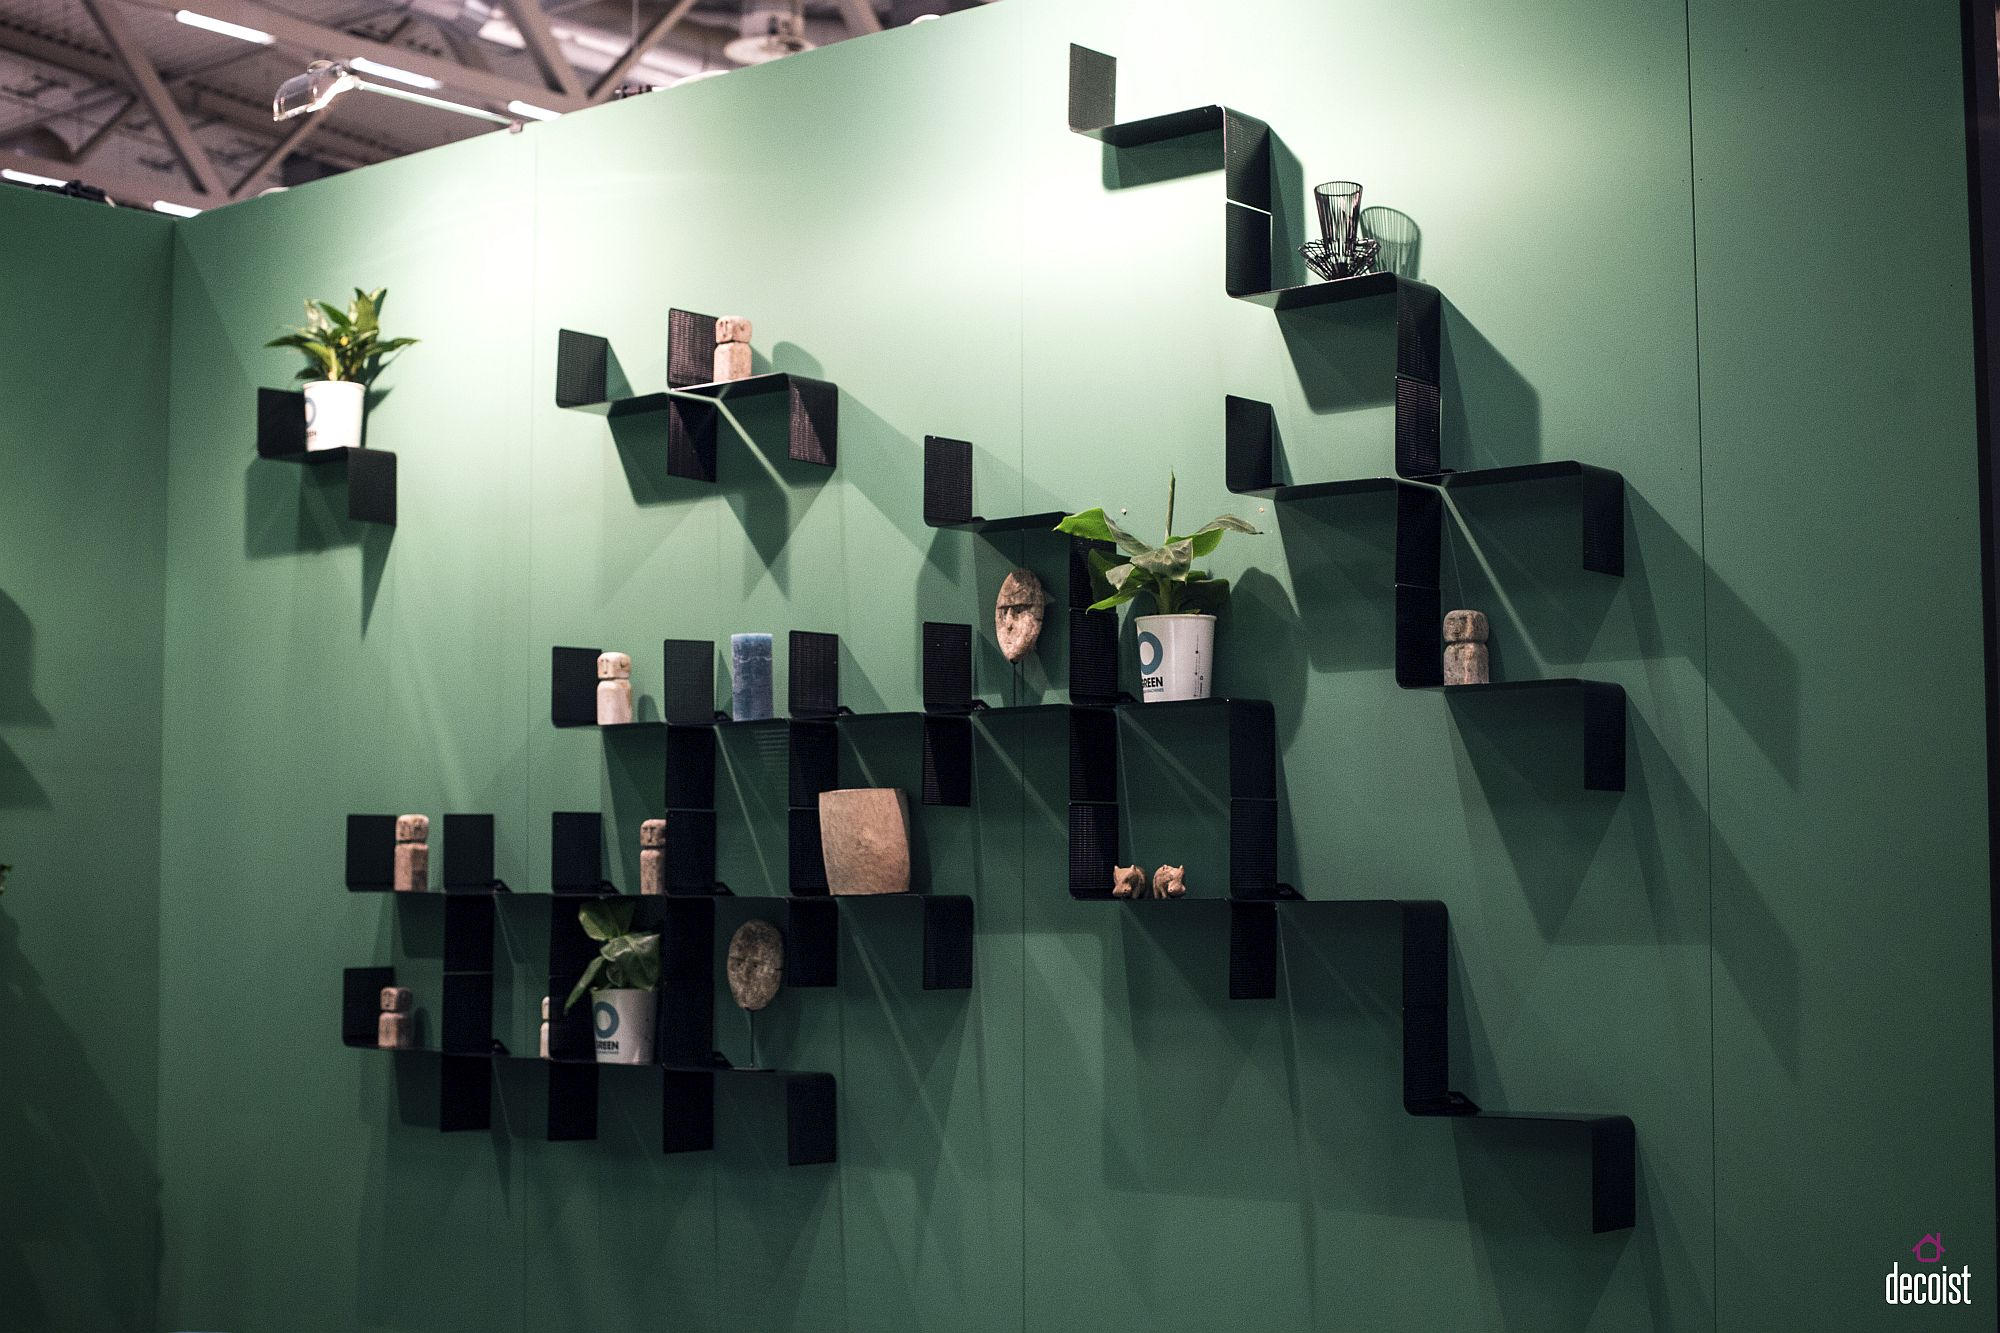 Repeating-these-snazzy-shelves-creates-a-great-accent-wall-that-also-offers-display-space